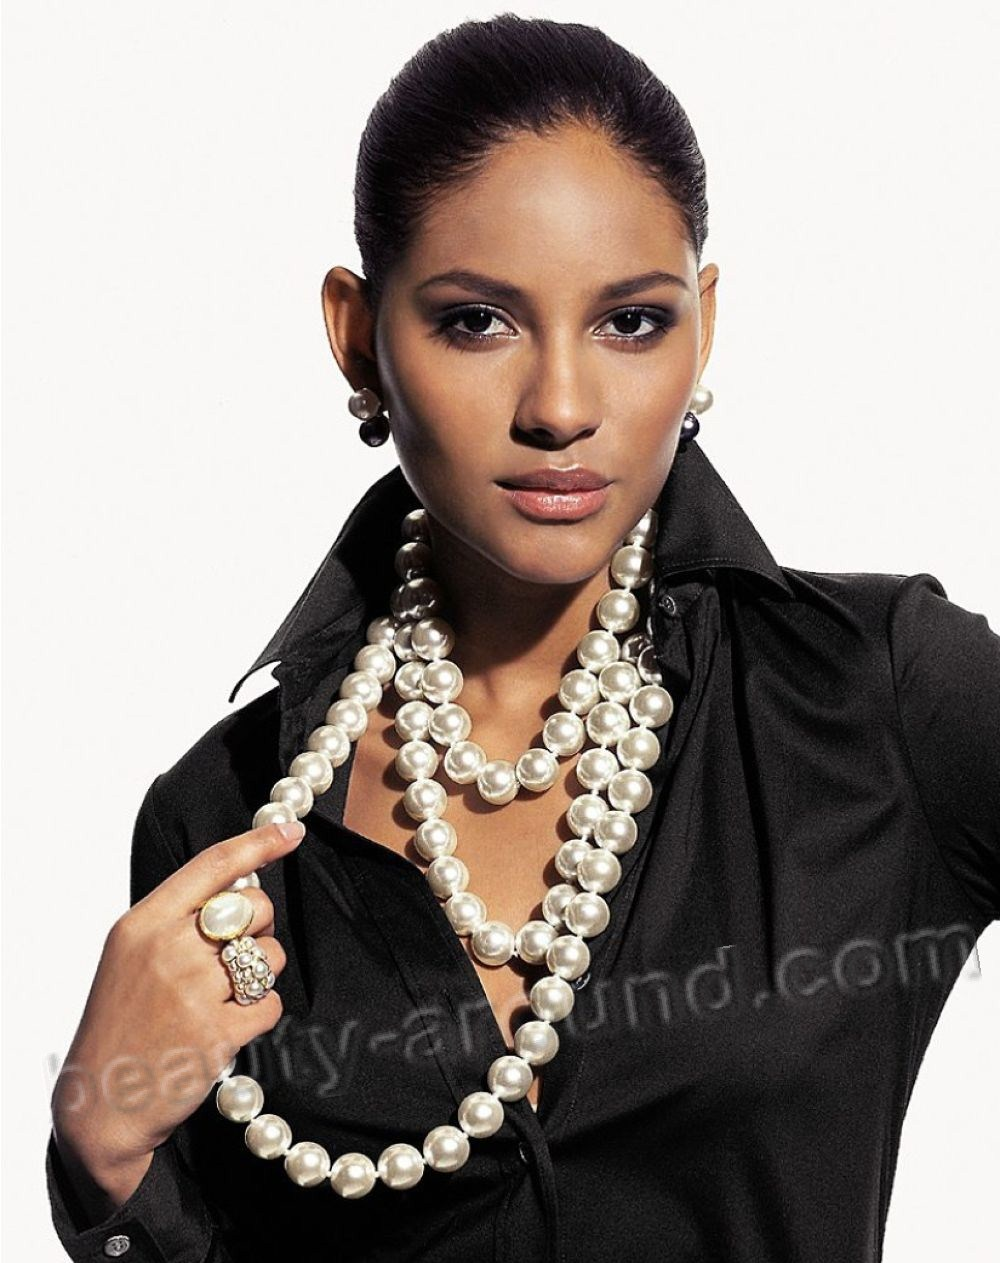 Emanuela de Paula  famous beatiful top model of Brazil